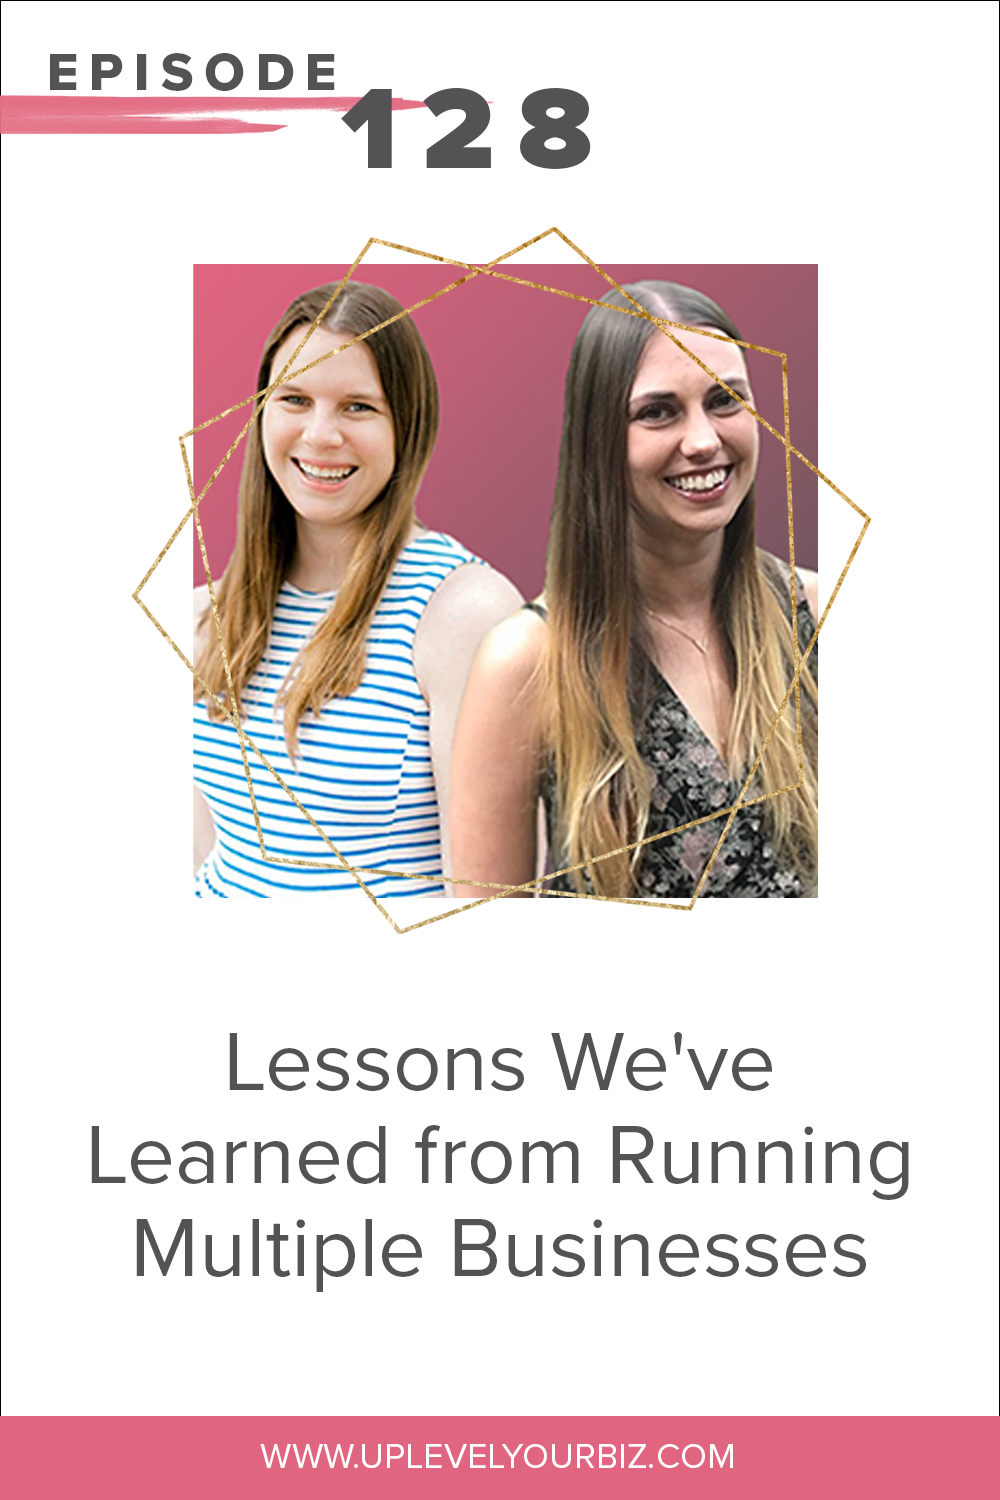 Episode 128 | Lessons We've Learned from Running Multiple Businesses